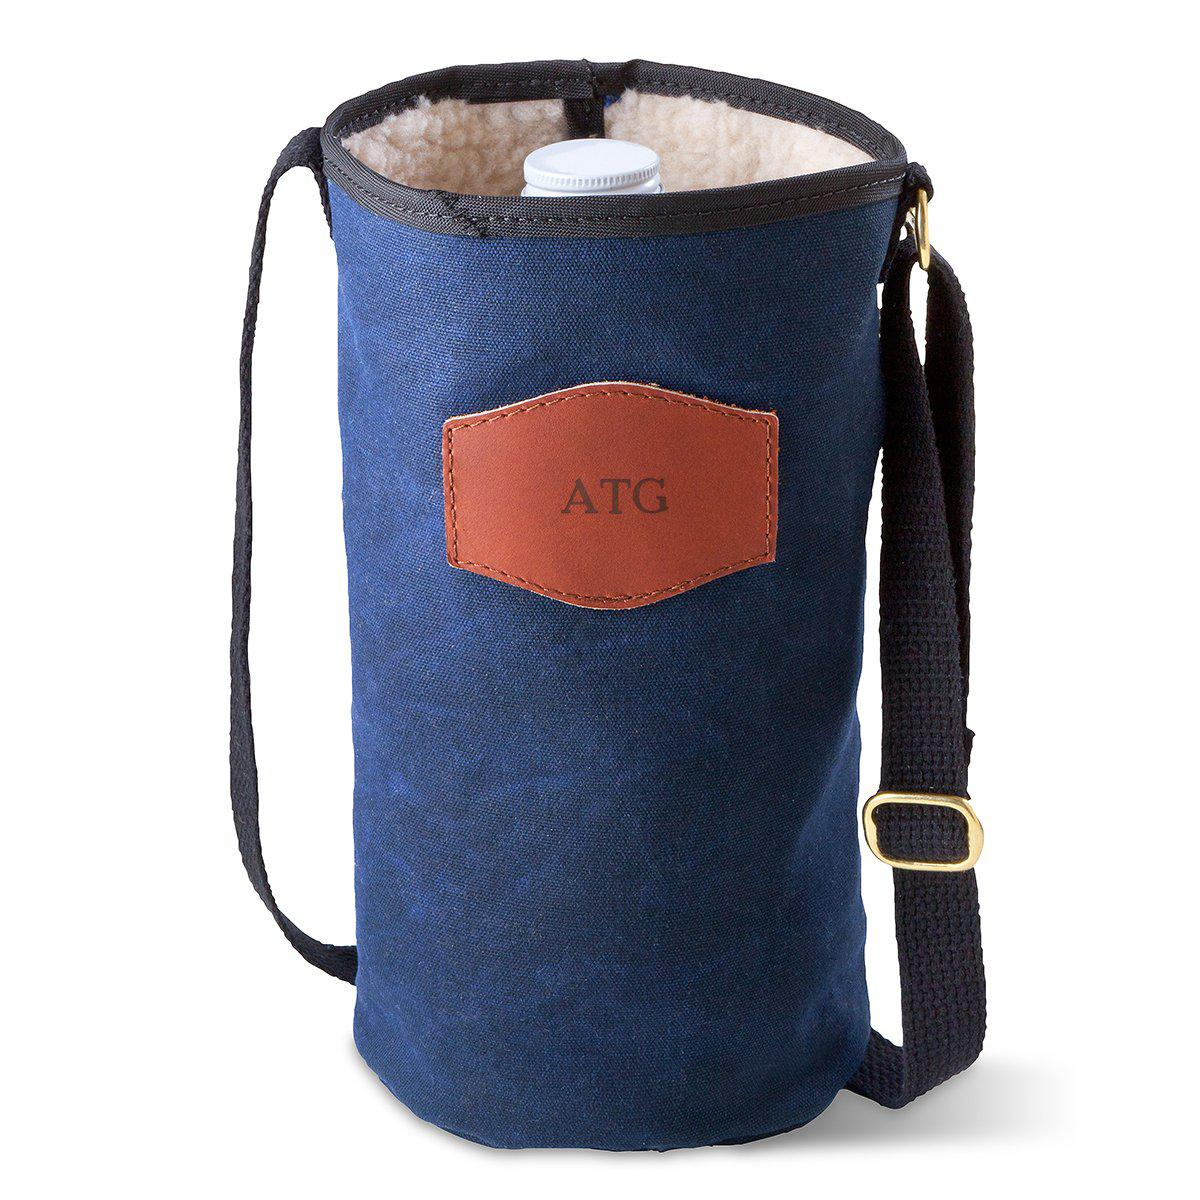 Personalized Waxed Canvas Blue Growler Carrier